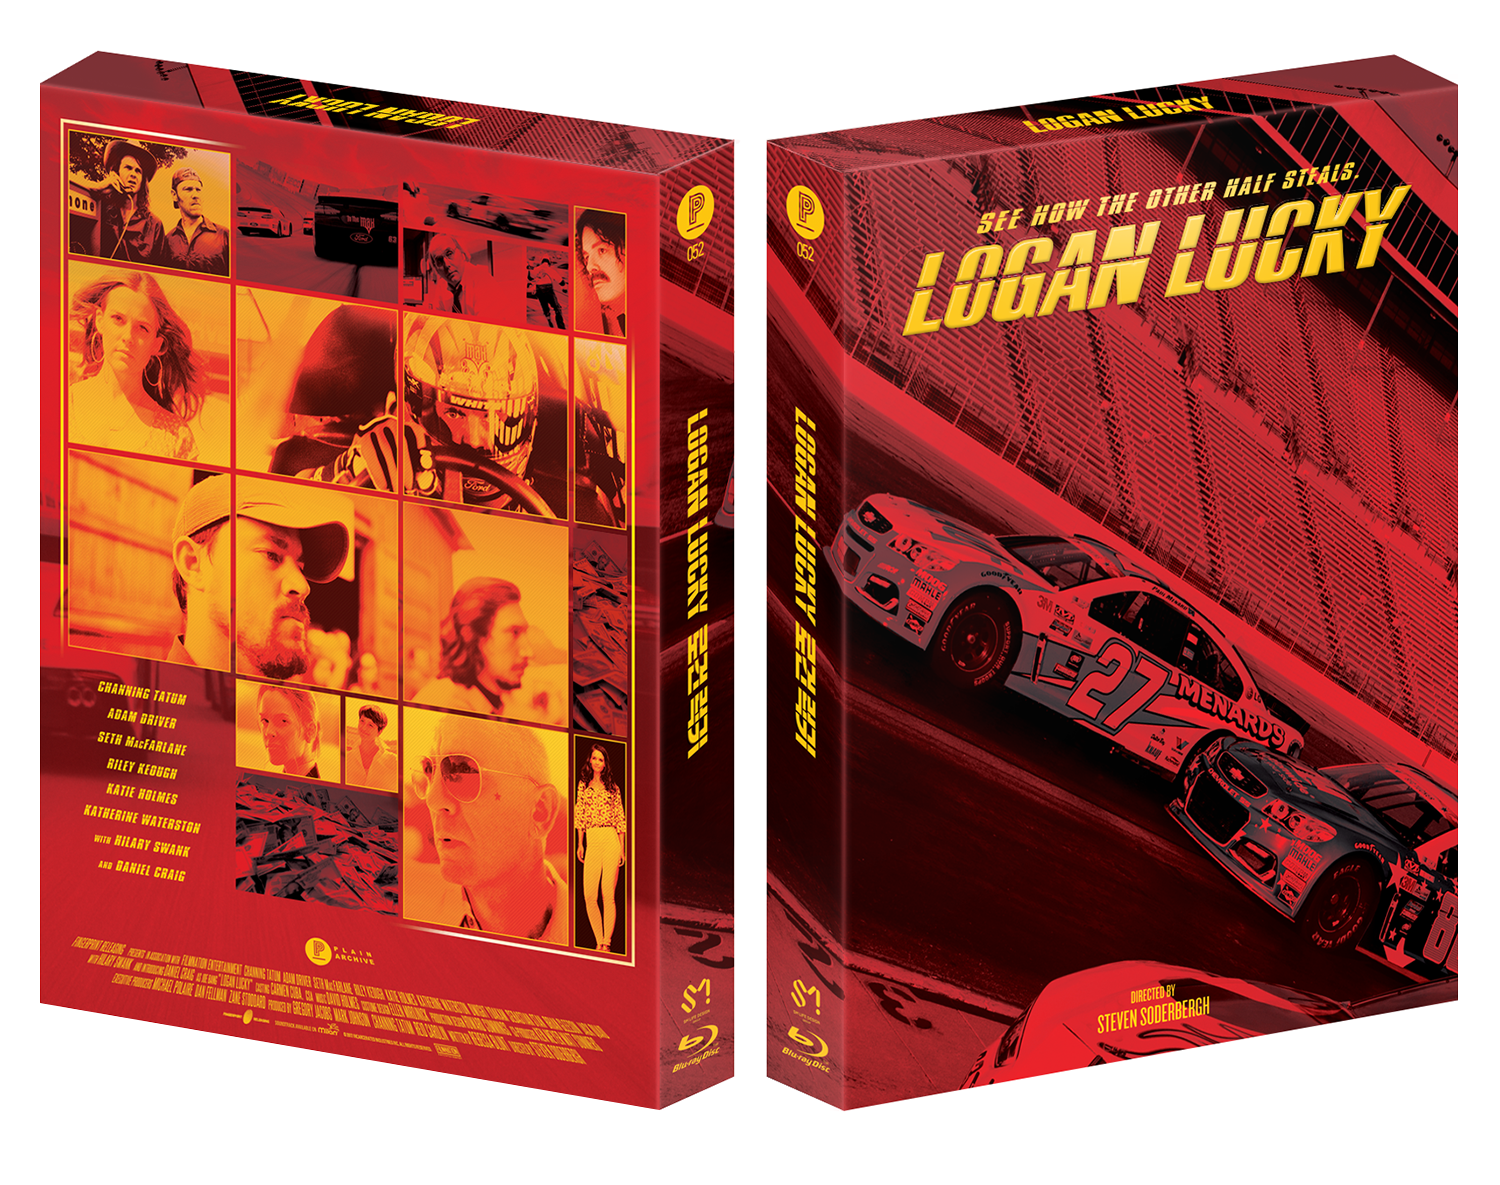 LOGAN LUCKY Blu-ray Steelbook: Triple Pack